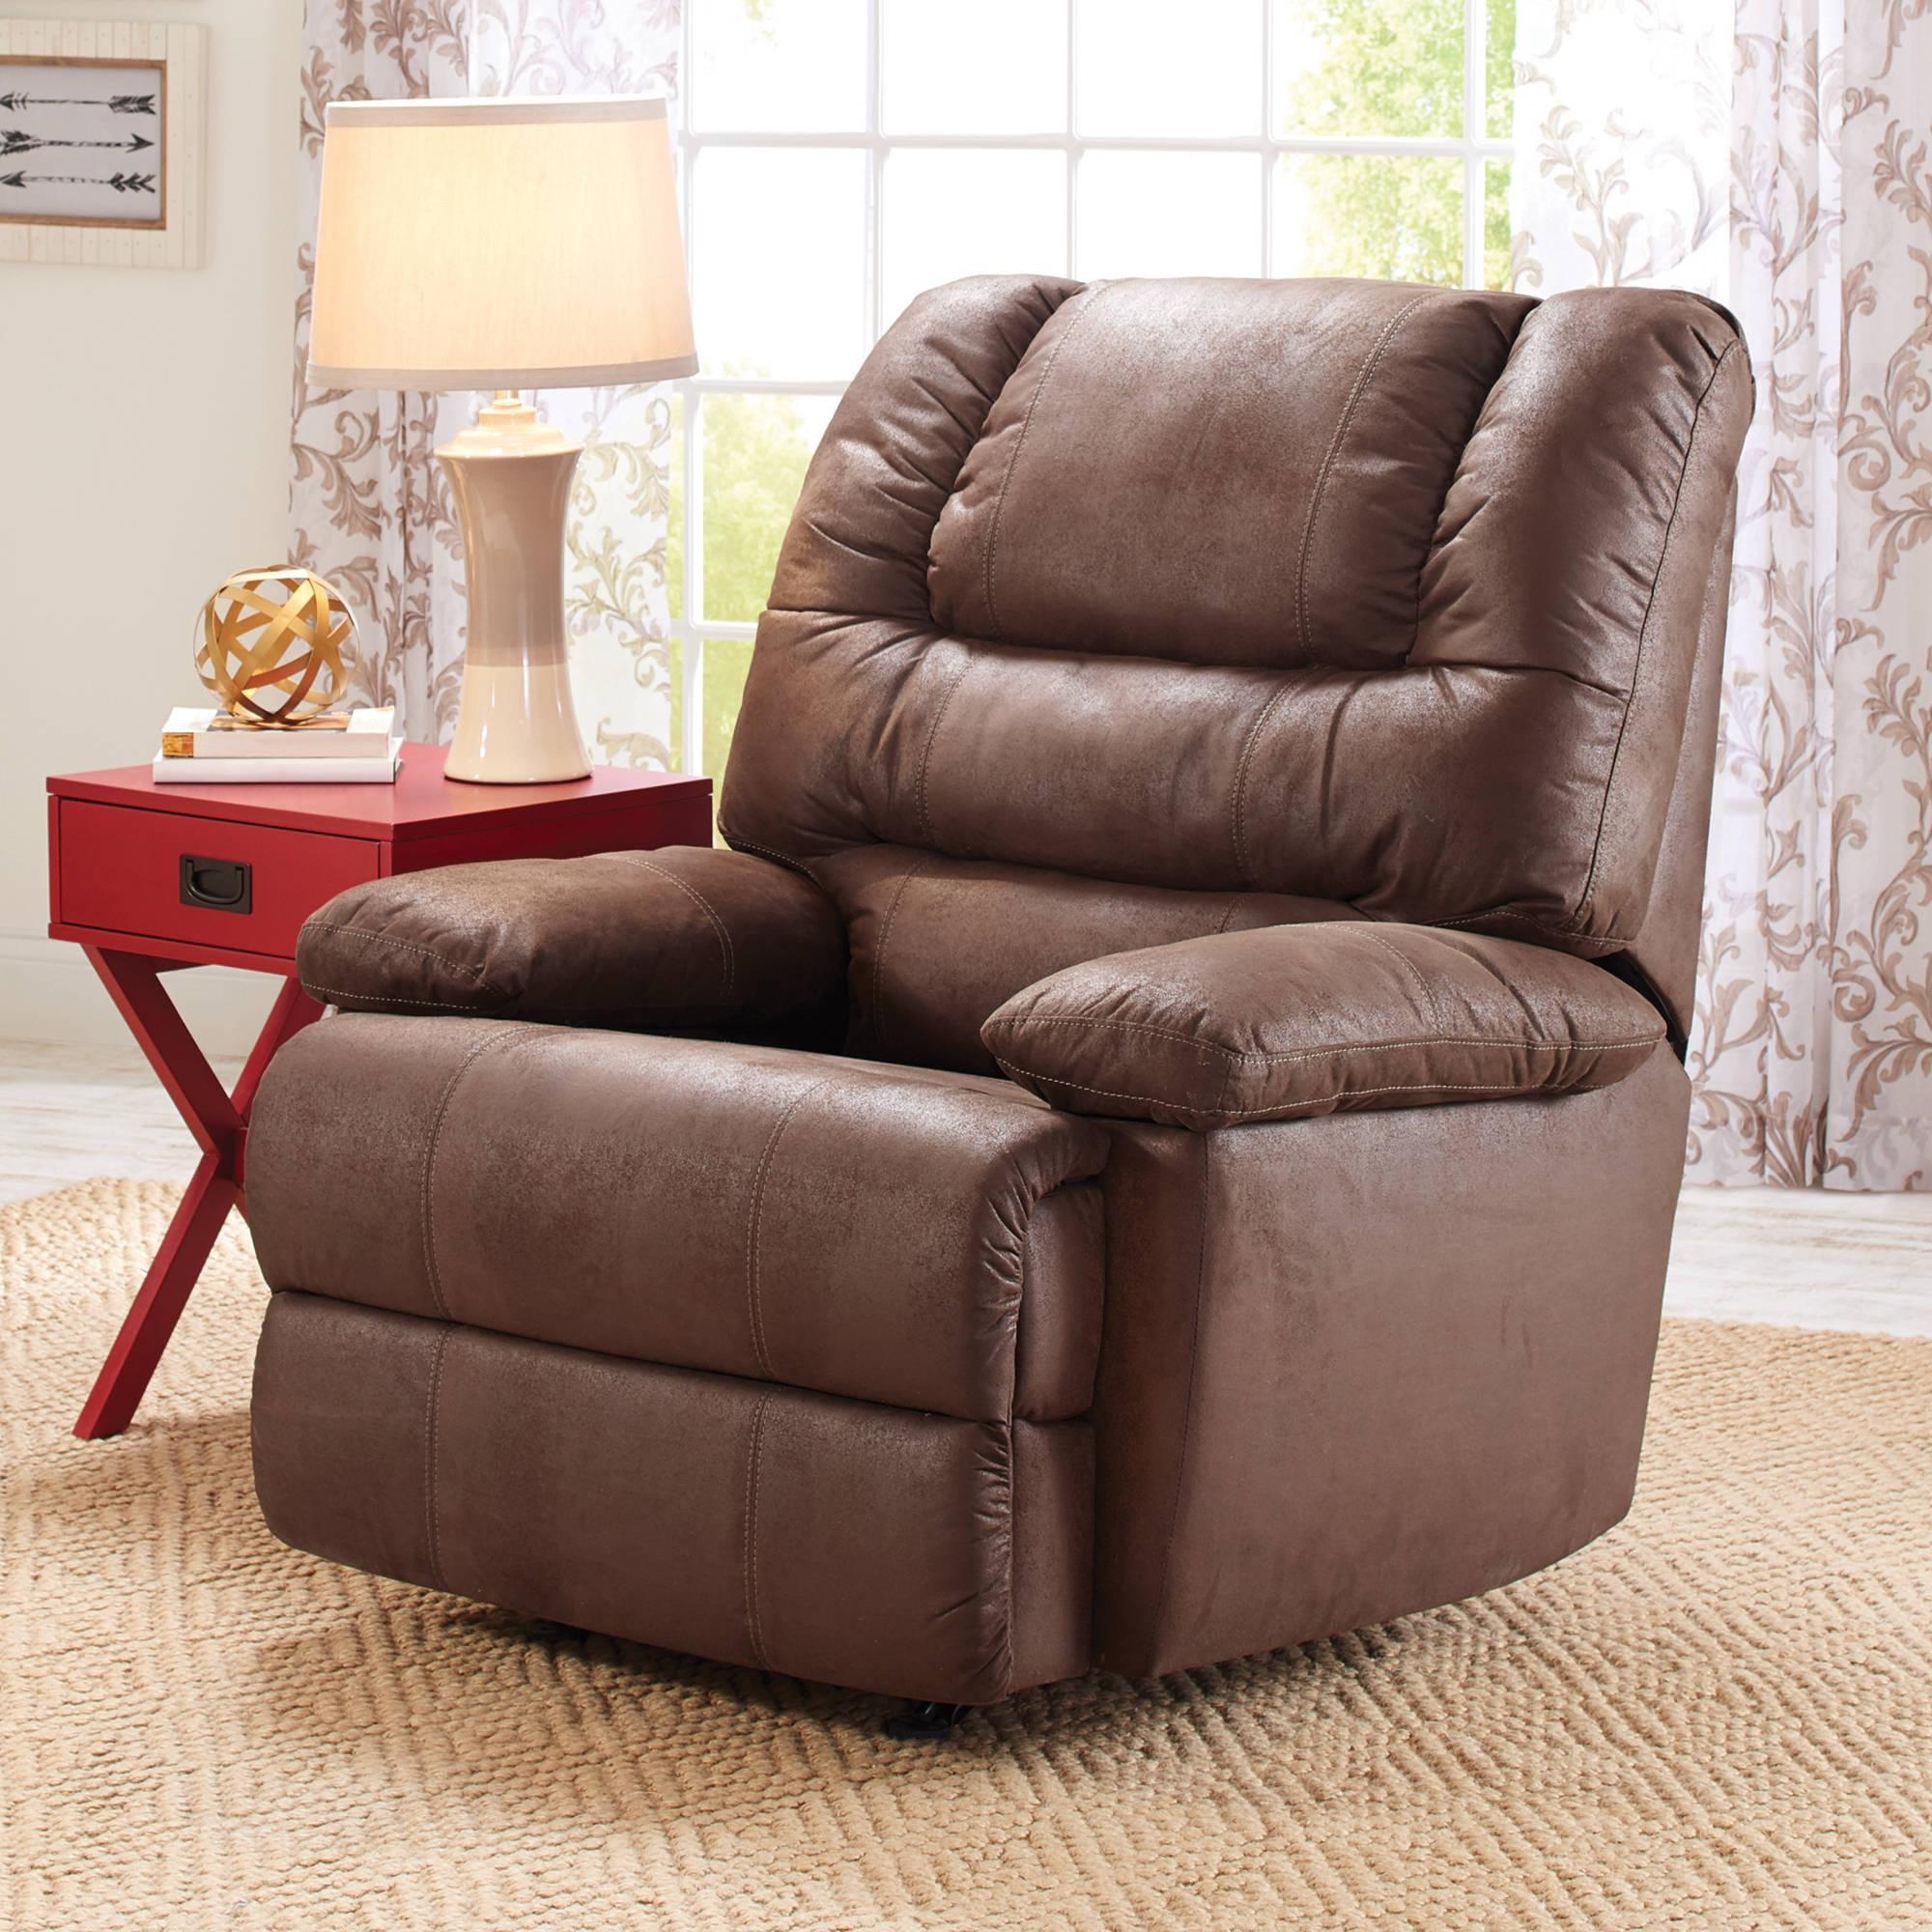 Furniture: Walmart Recliners For Comfortable Armchair Design Ideas Inside Big Sofa Chairs (View 20 of 20)